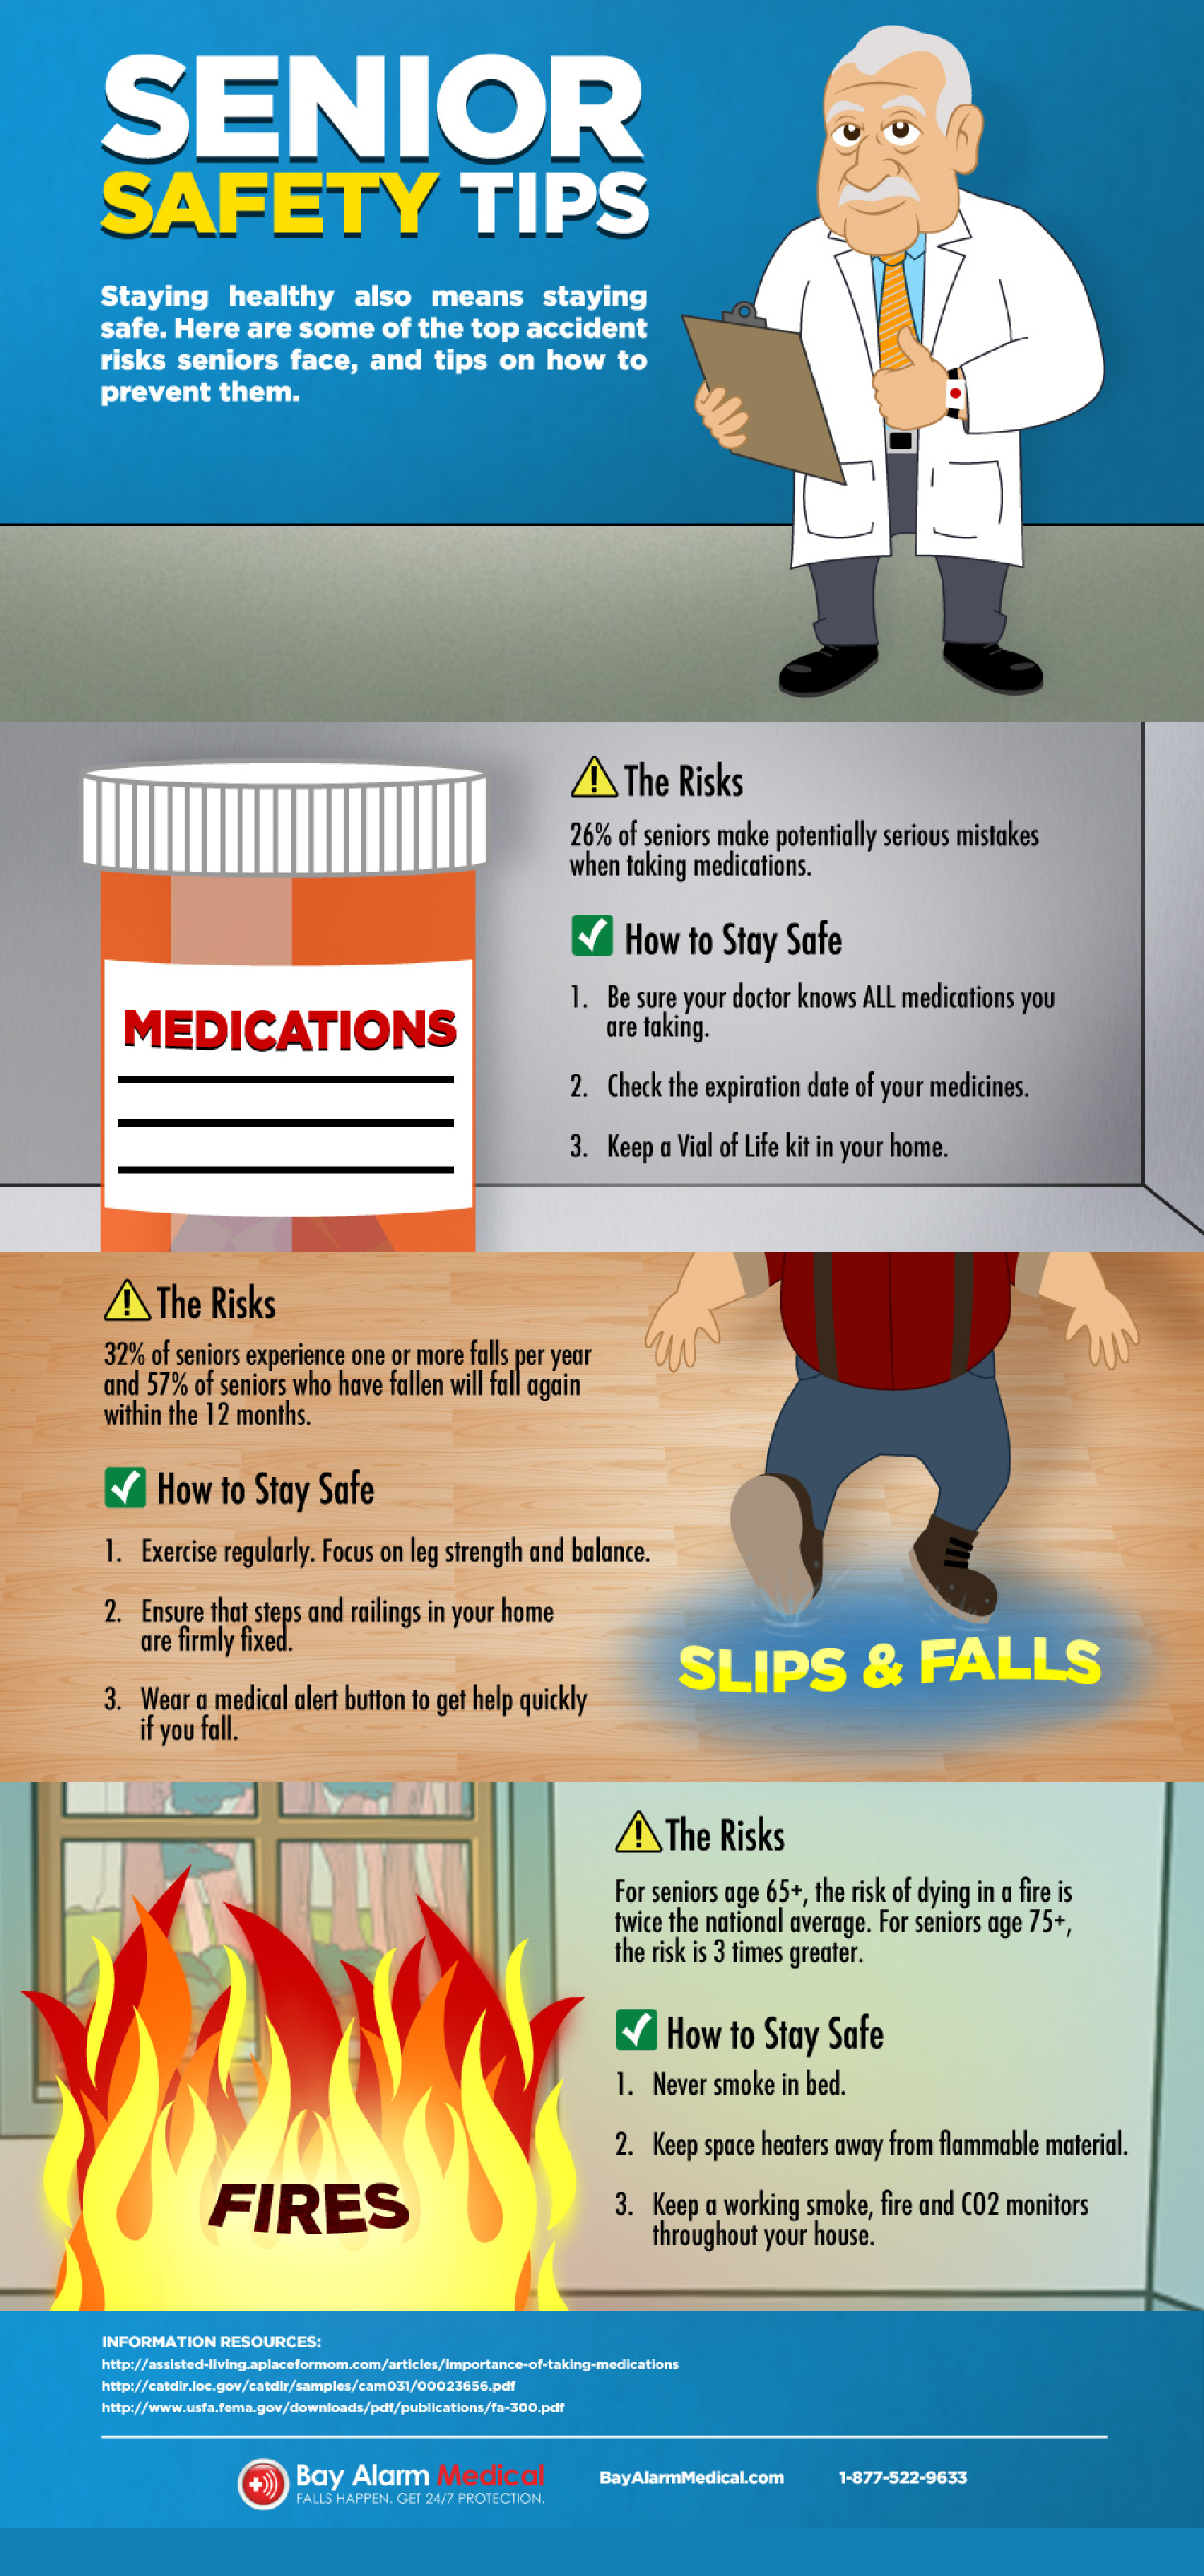 Senior Safety Risks Amp Tips For Staying Safe Visual Ly